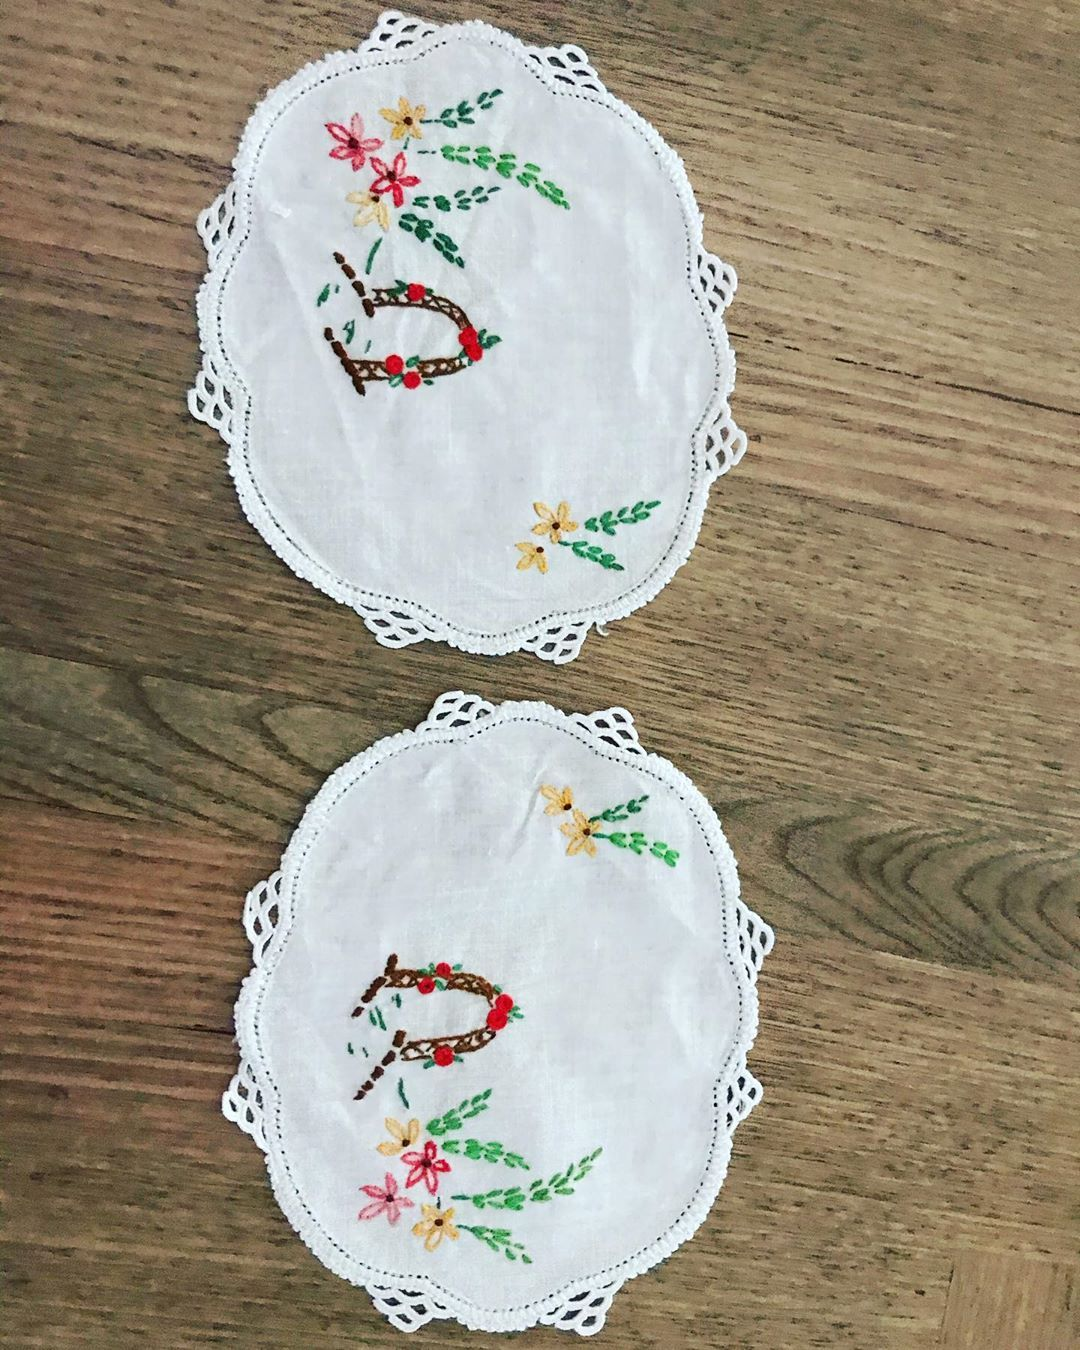 Embroidered Pair Hand embroidered with hand crocheted edging  Excellent condition $7 pair  #cloth #sew #sewin #crochet #linen #vintage #vintagefinds  #retro #vintagelinen #repurposed #doiley #doilies #handmade #vintage #vintagefabric #fabric #vintagestyle #vintagelover #vintageperth #embroidery #embroideryart